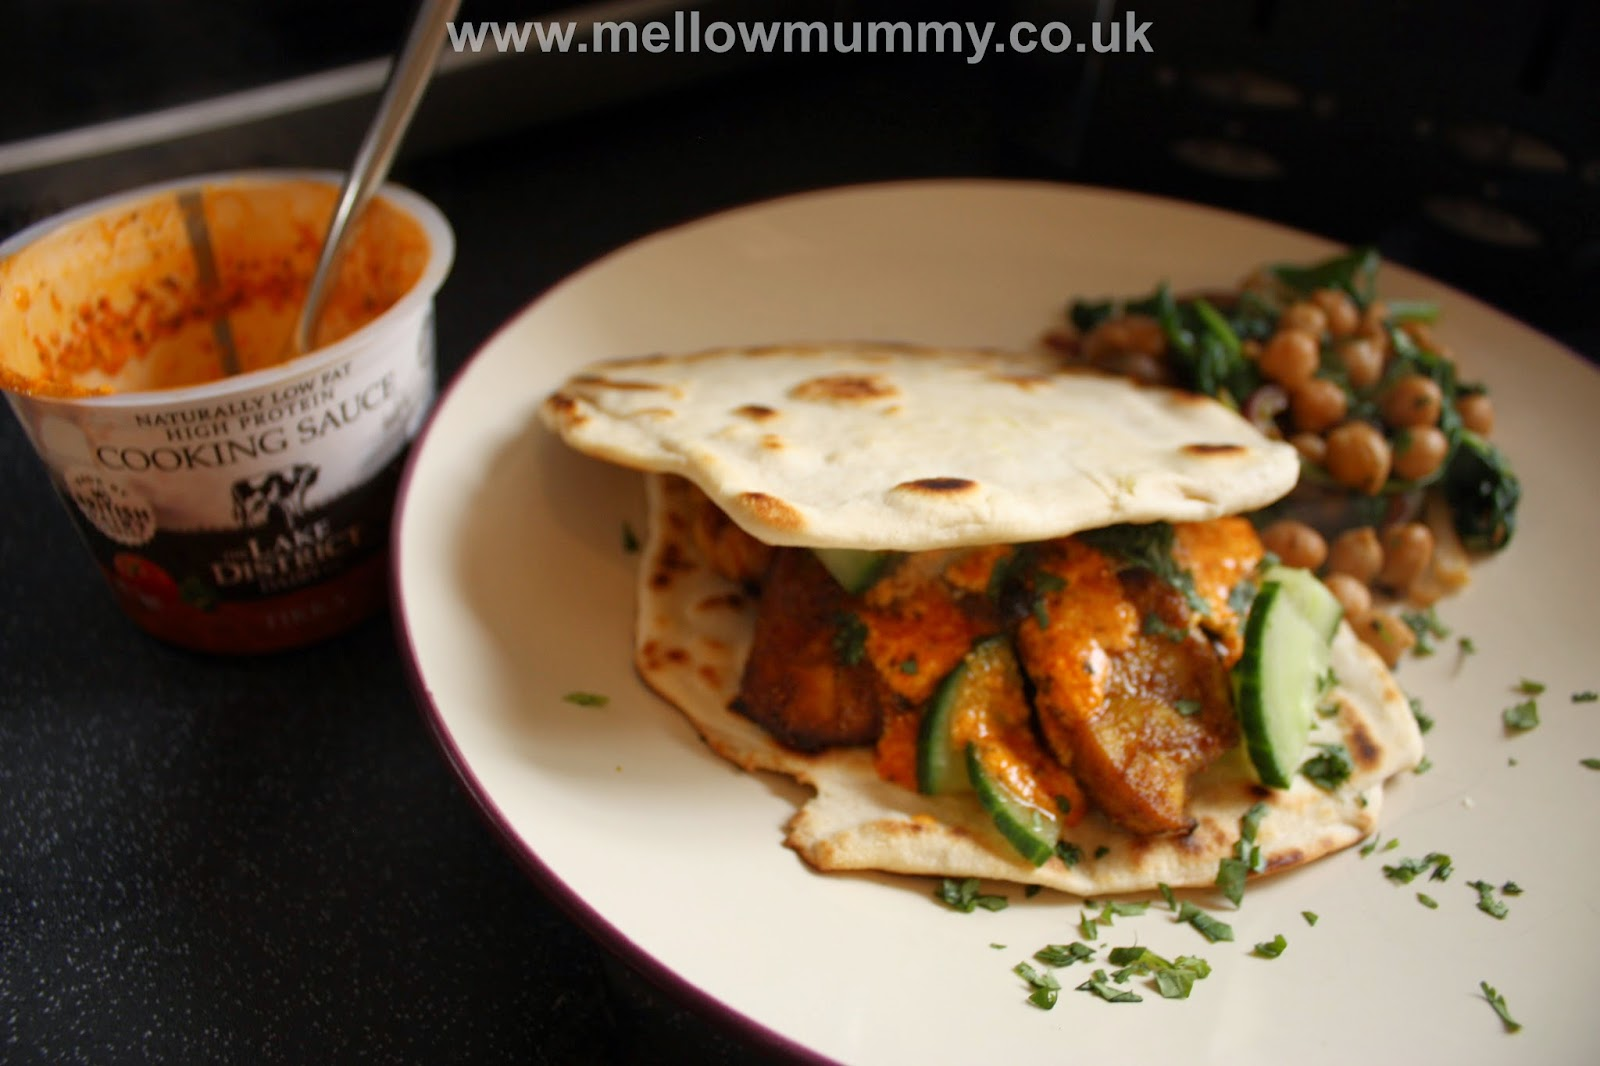 Tandoori chicken roti with Tikka quark cooking sauce